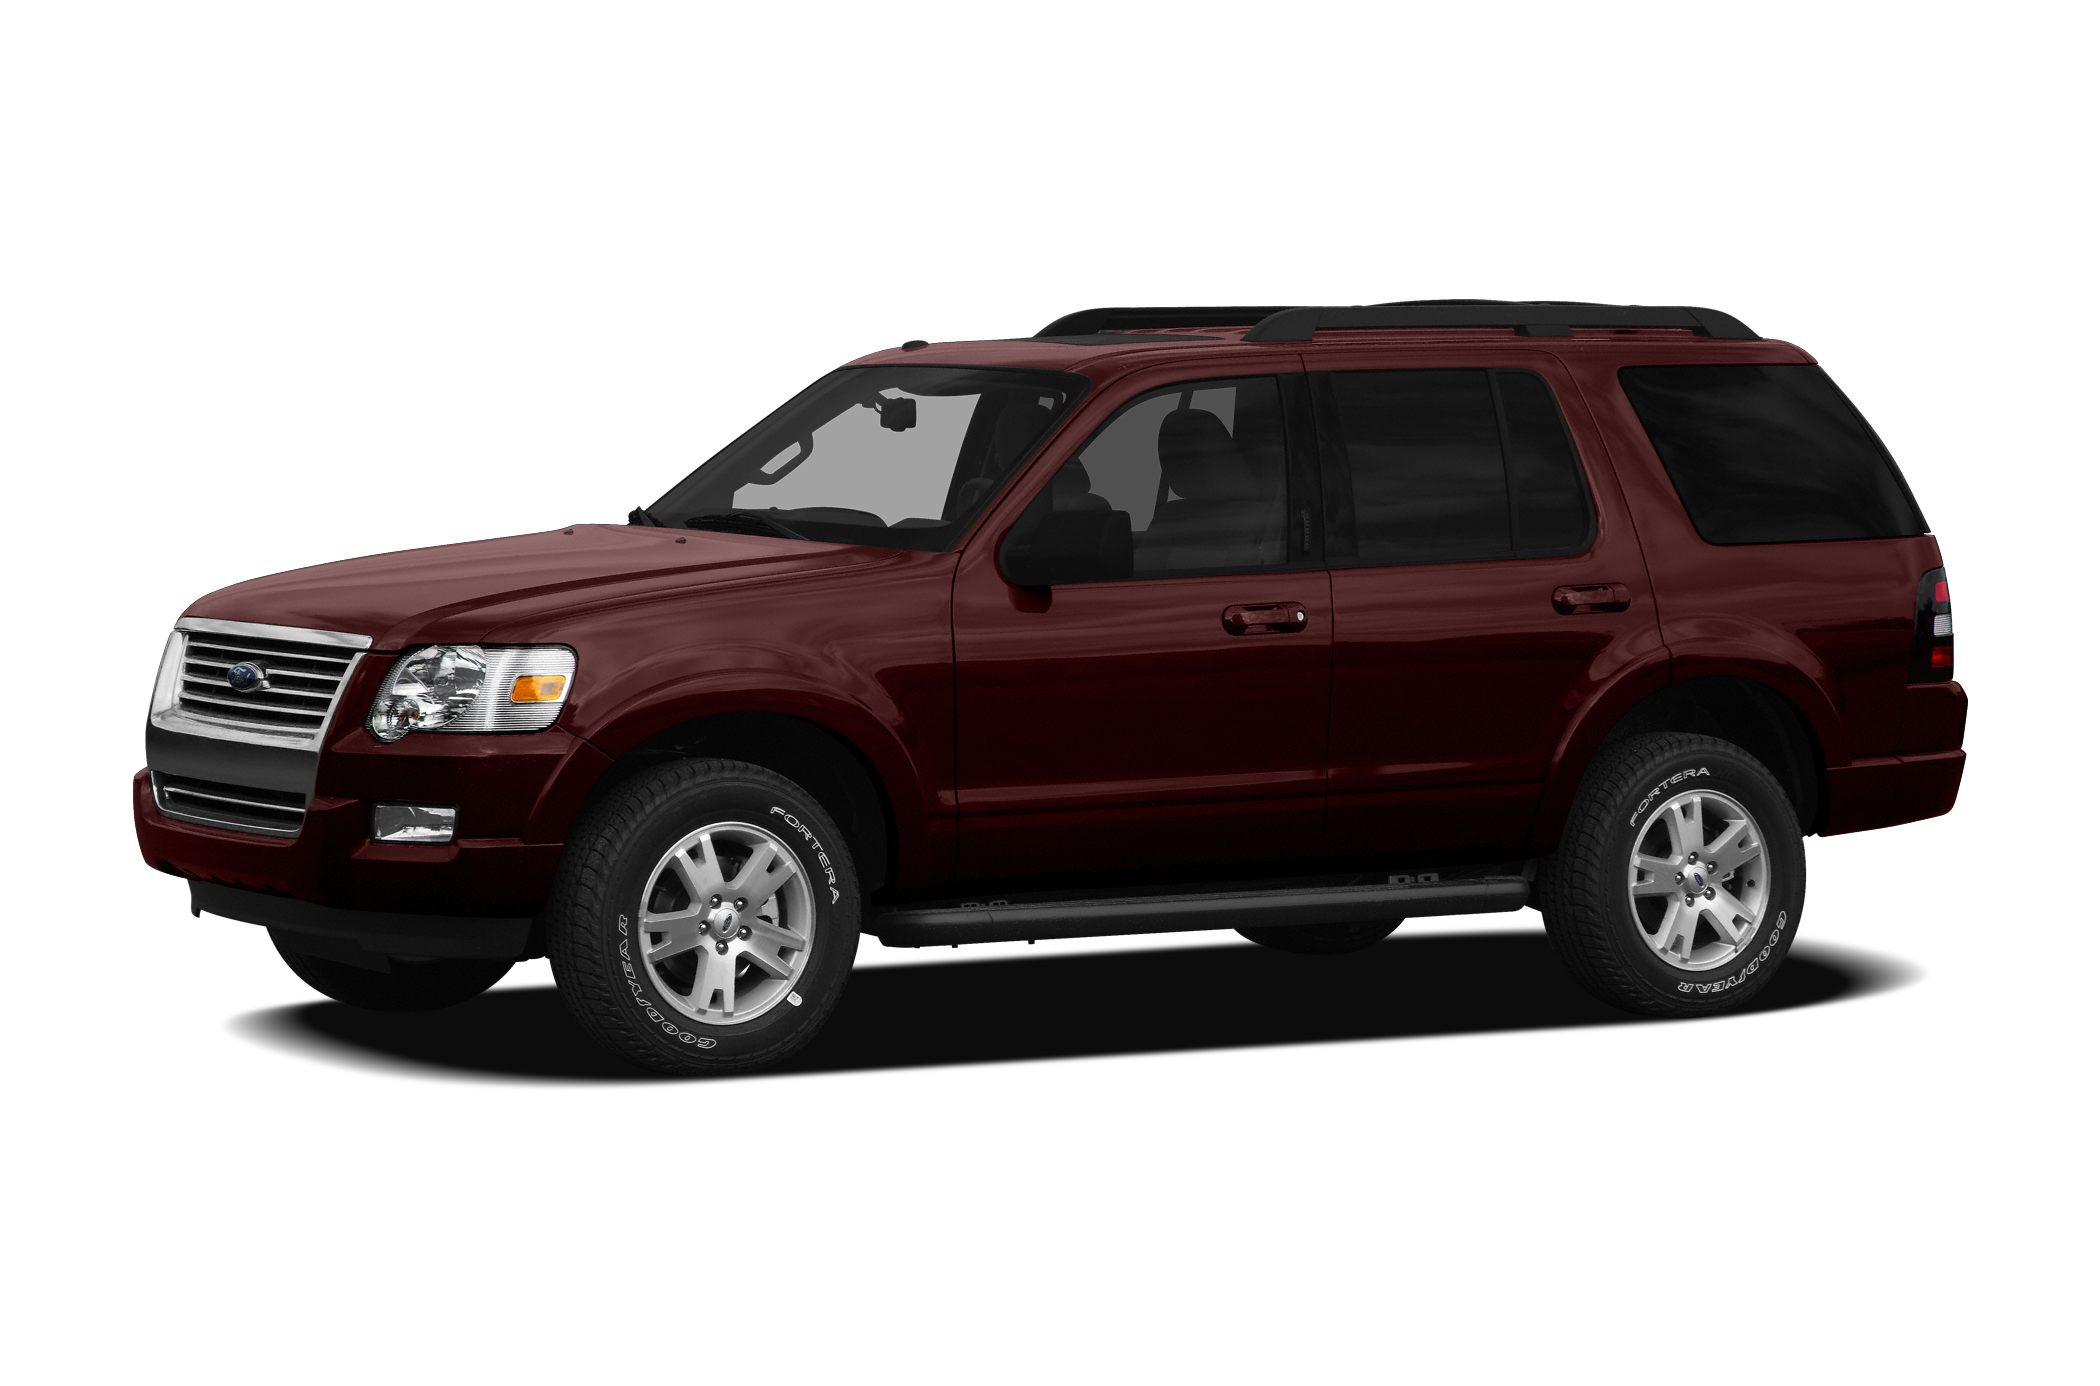 2010 Ford Explorer XLT Youre going to love the 2010 Ford Explorer An American Icon Ford priorit